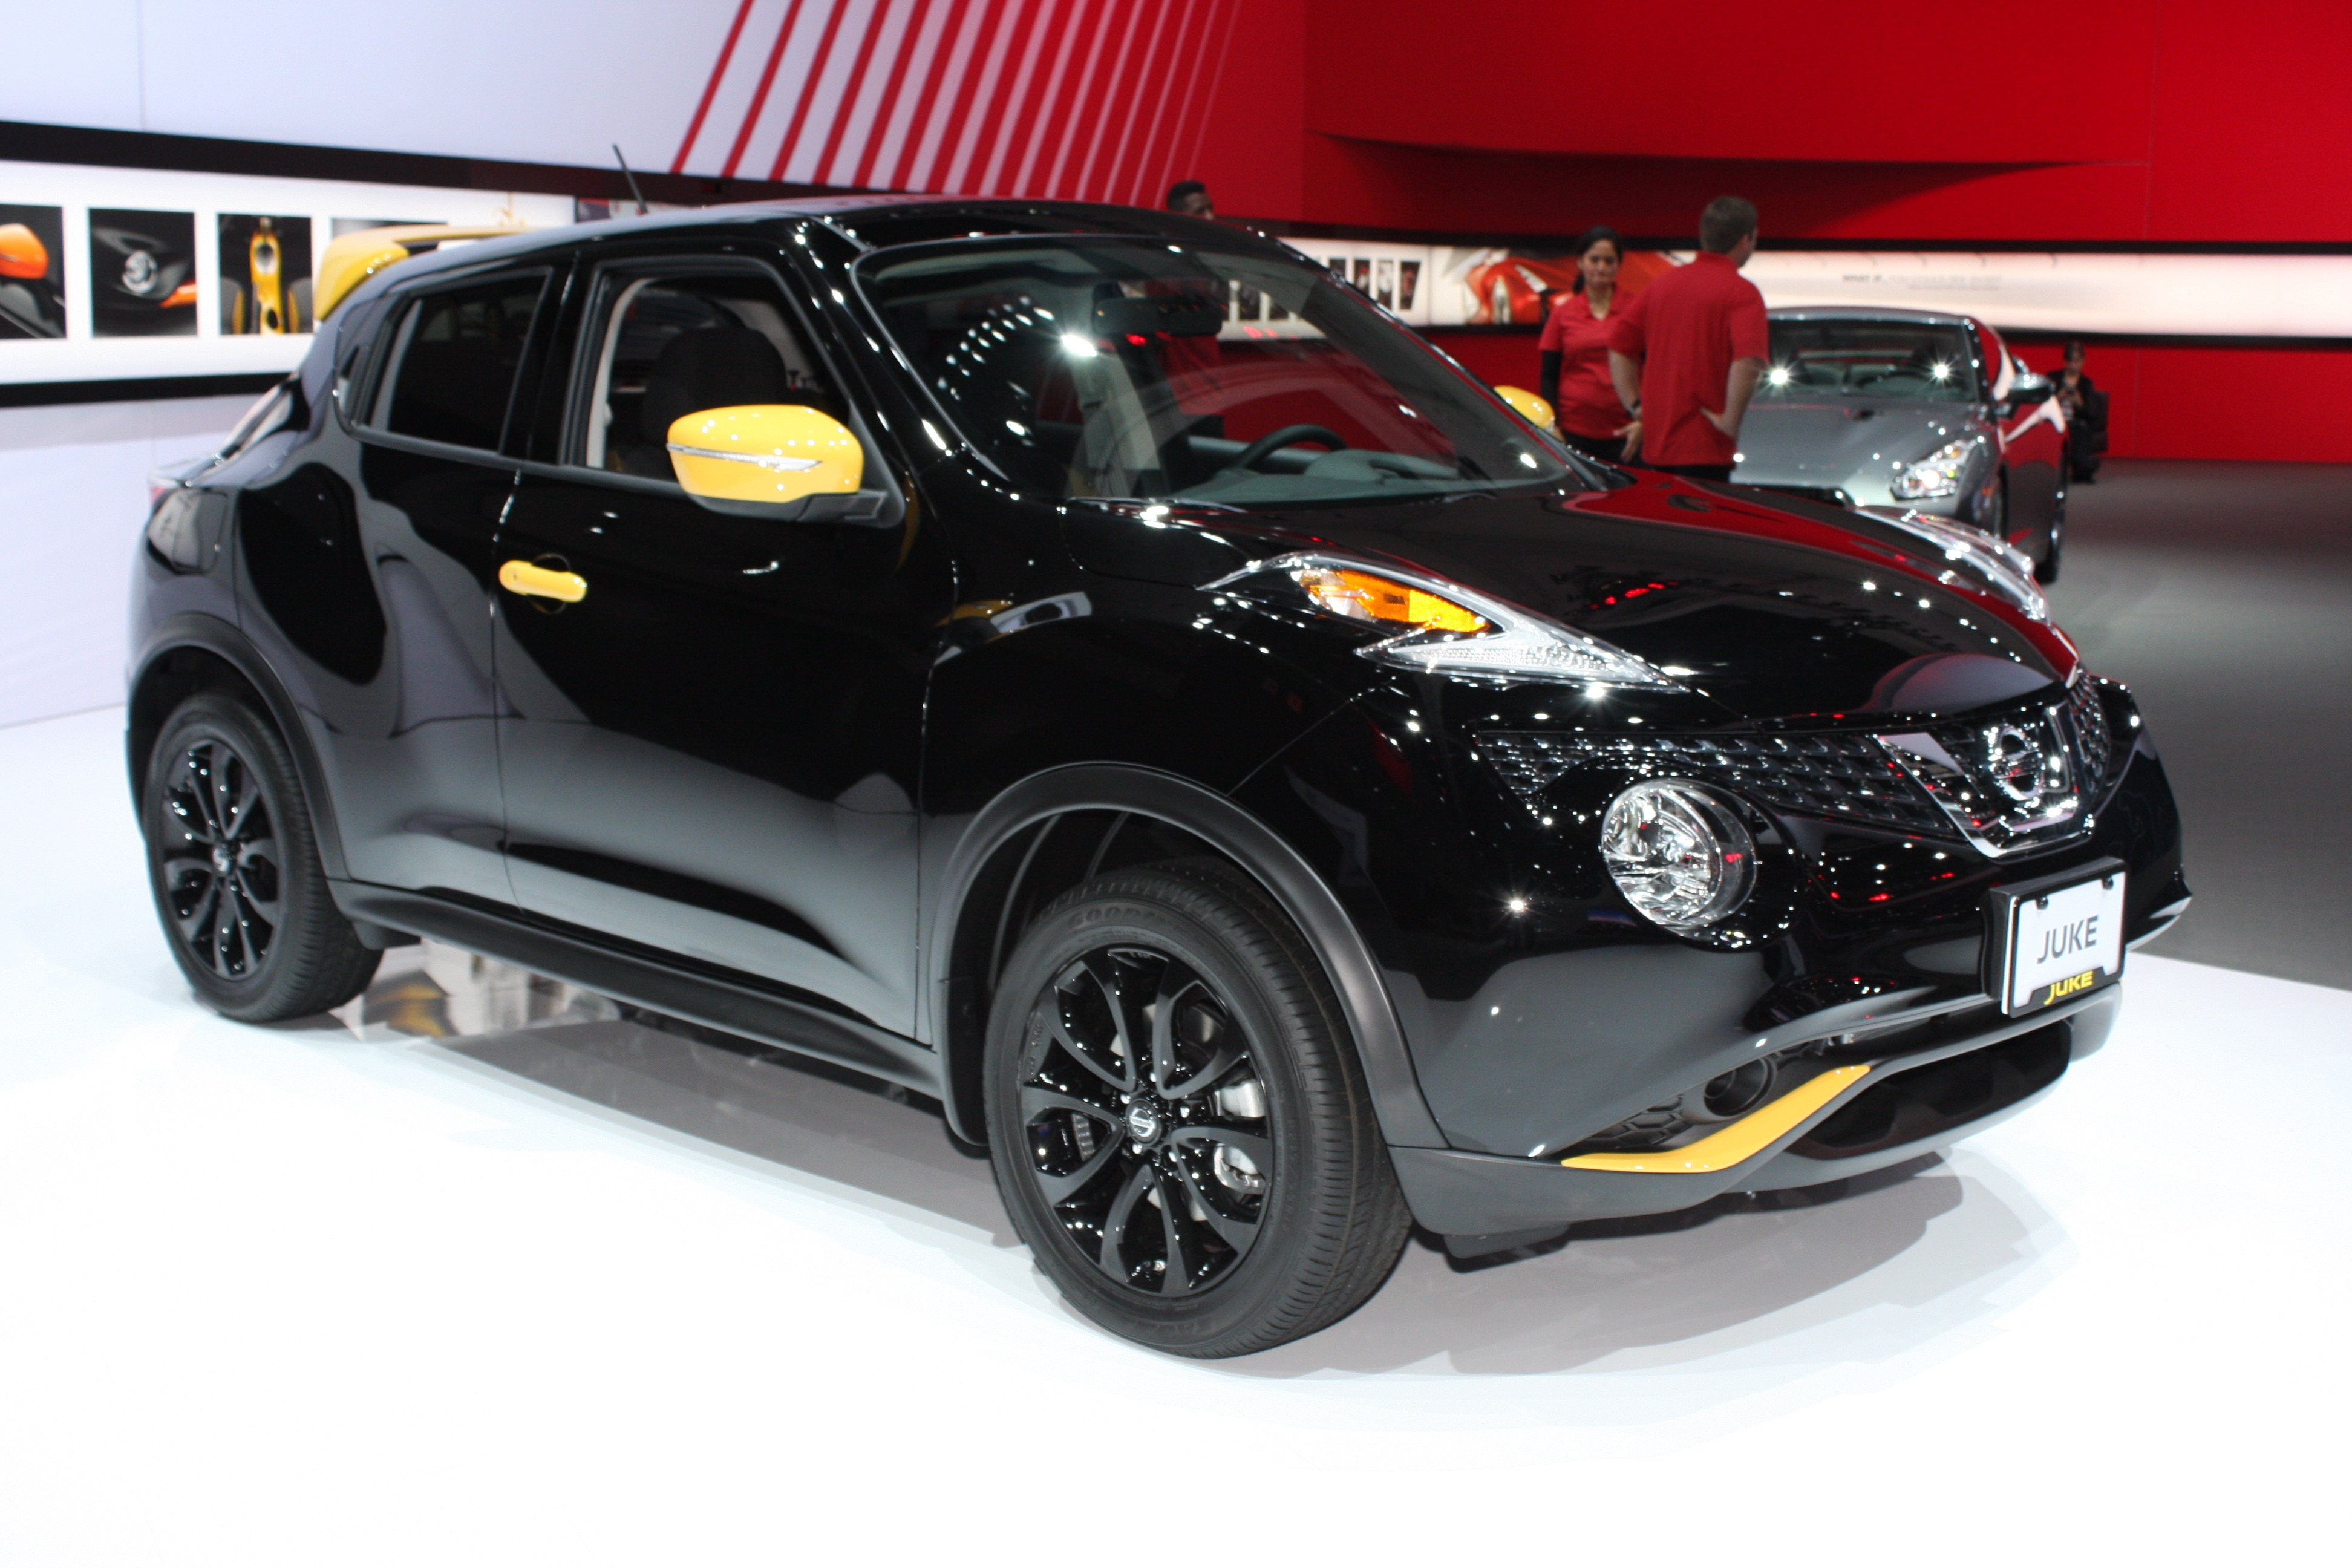 2016 nissan juke gets stinger edition personalization package. Black Bedroom Furniture Sets. Home Design Ideas